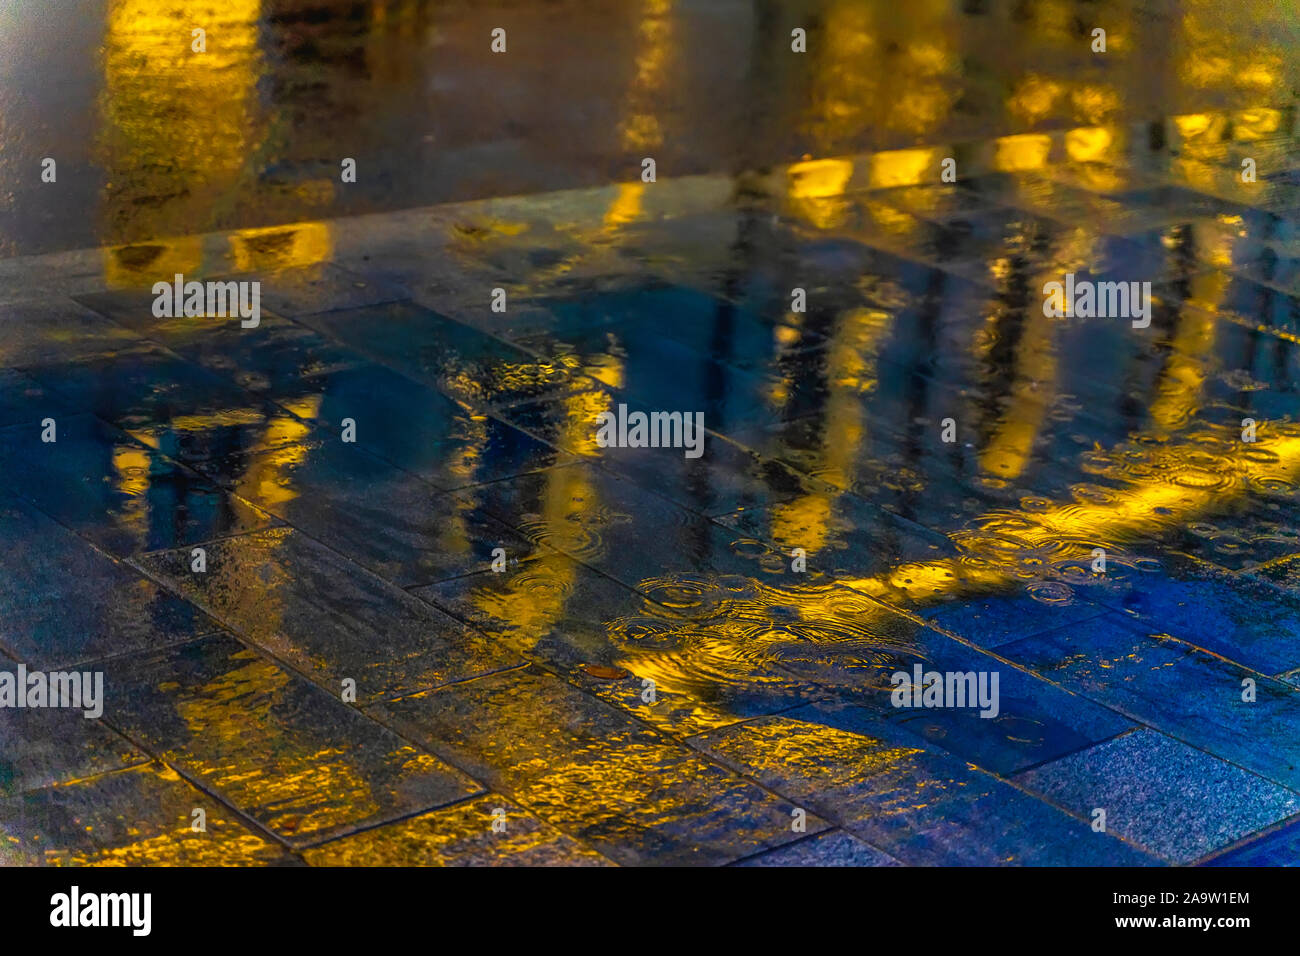 Blurred reflection of a bright building in a puddle on the asphalt. Rain in the city at night. Abstract vivid colorful background. Selective focus Stock Photo